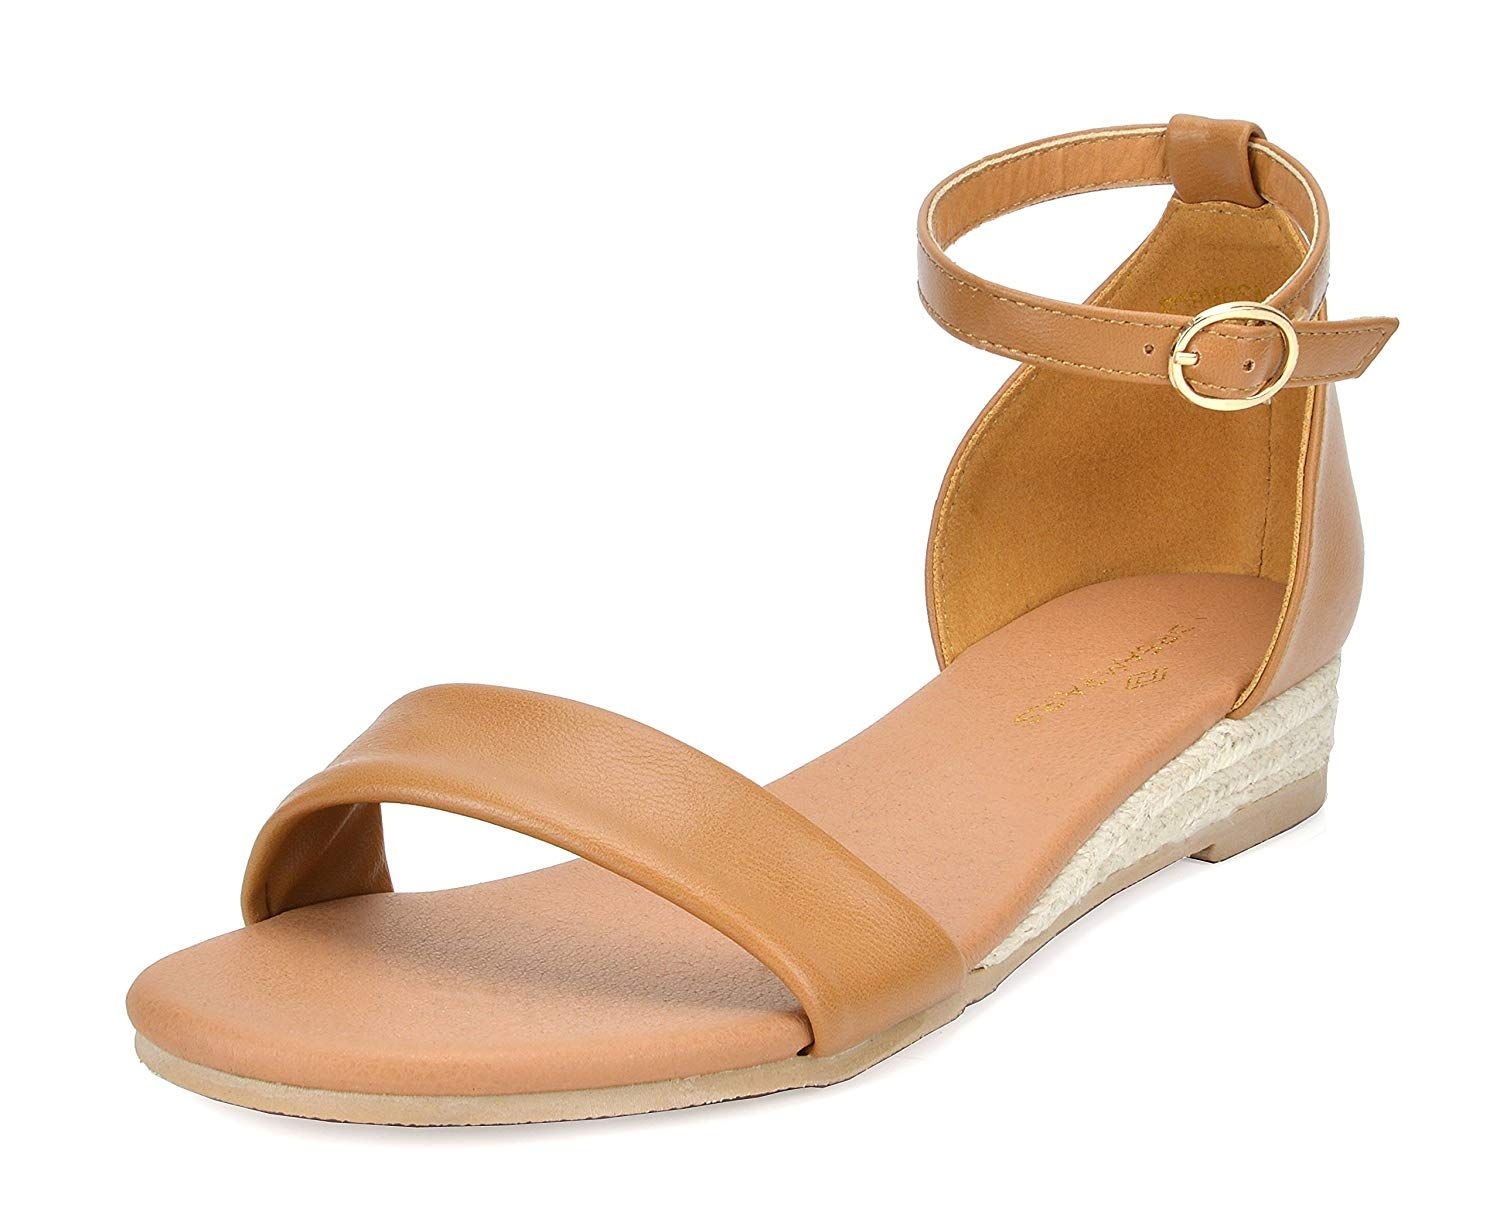 a4b53d03b3 DREAM PAIRS Women's Formosa_10 Wedge Sandal. Add a fancy sparkle to your  wordrobe with this